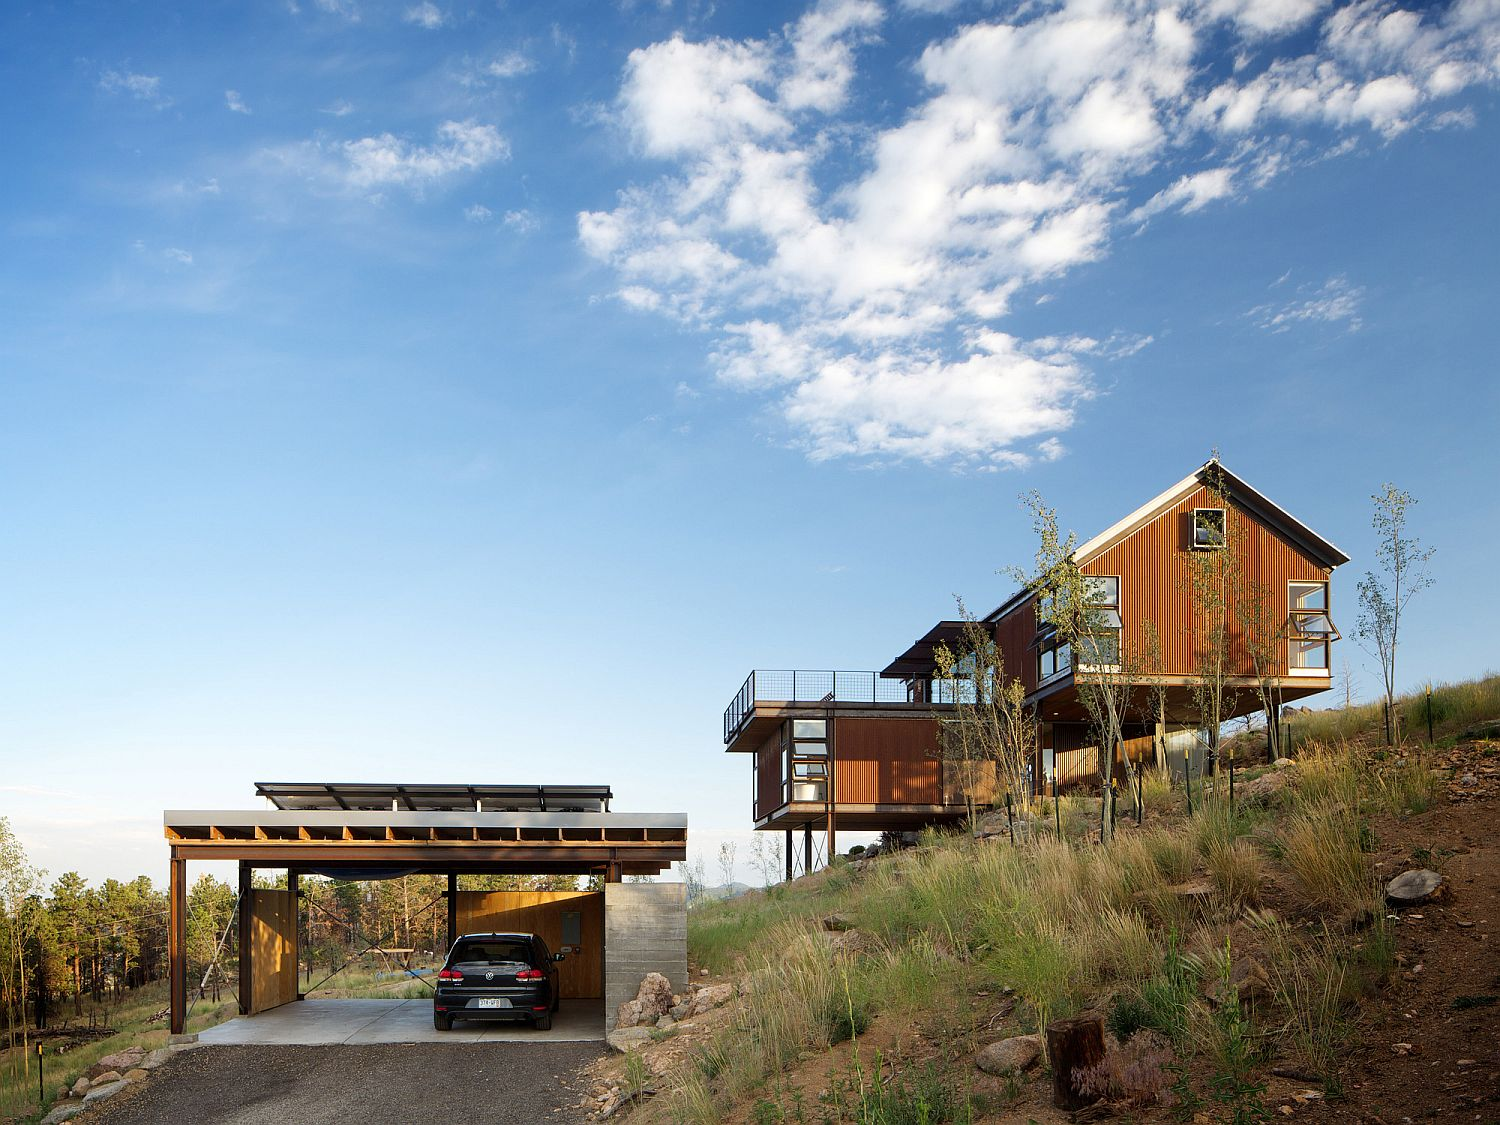 Garage and entry of the mountain home with fabulous views of surrounding landscape